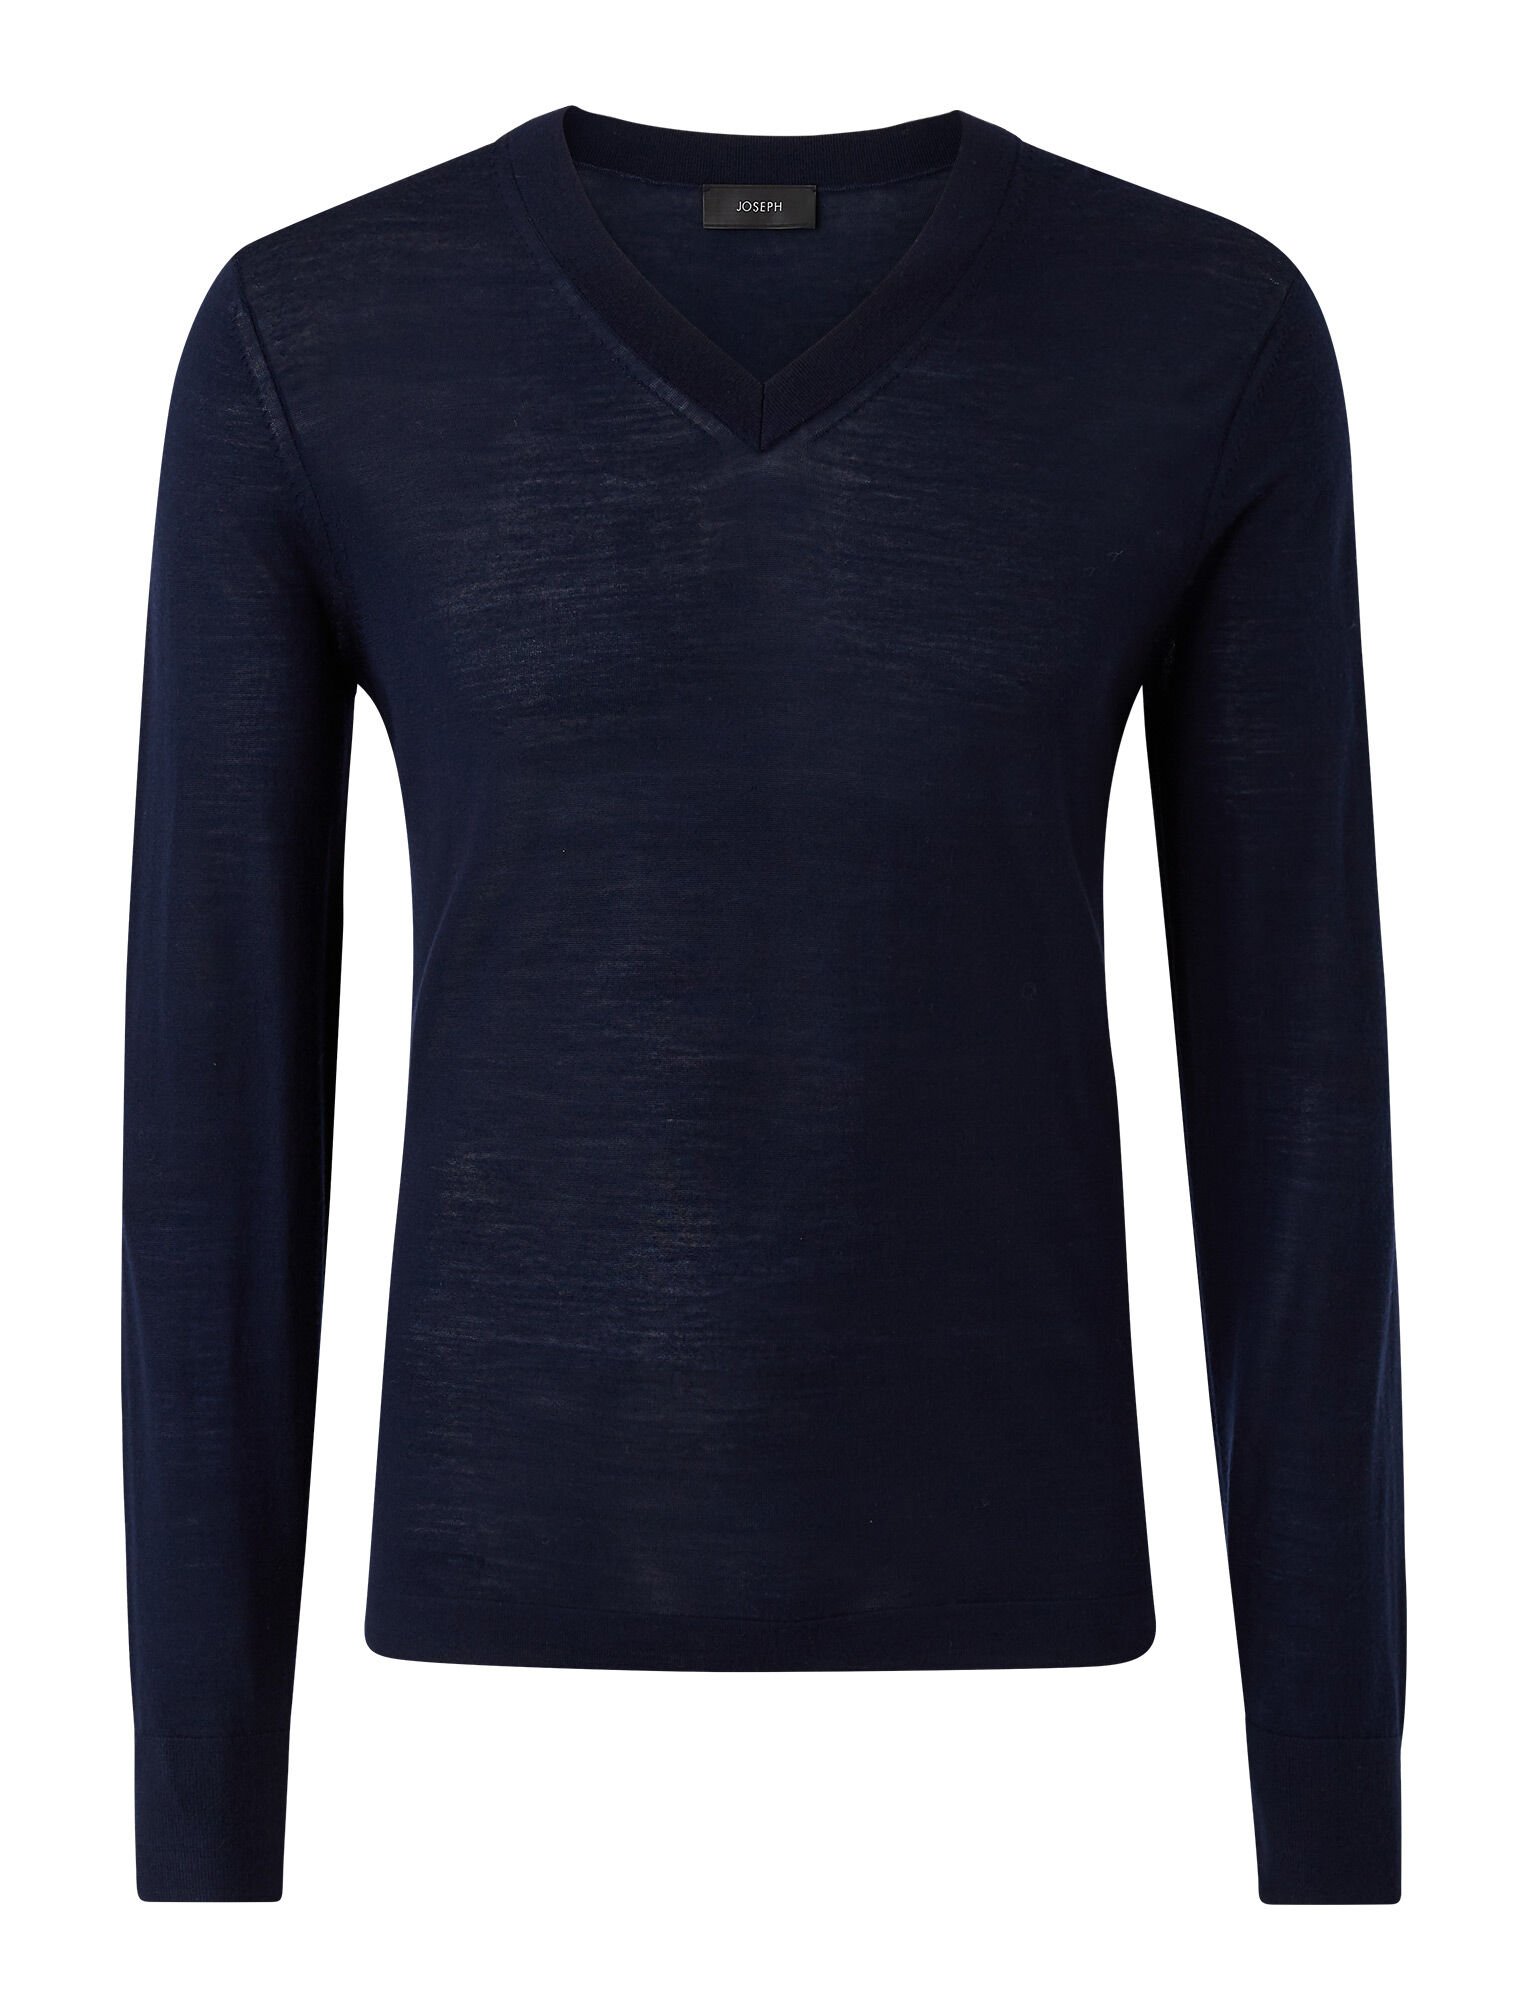 Joseph, V Neck Light Merinos Knit, in NAVY